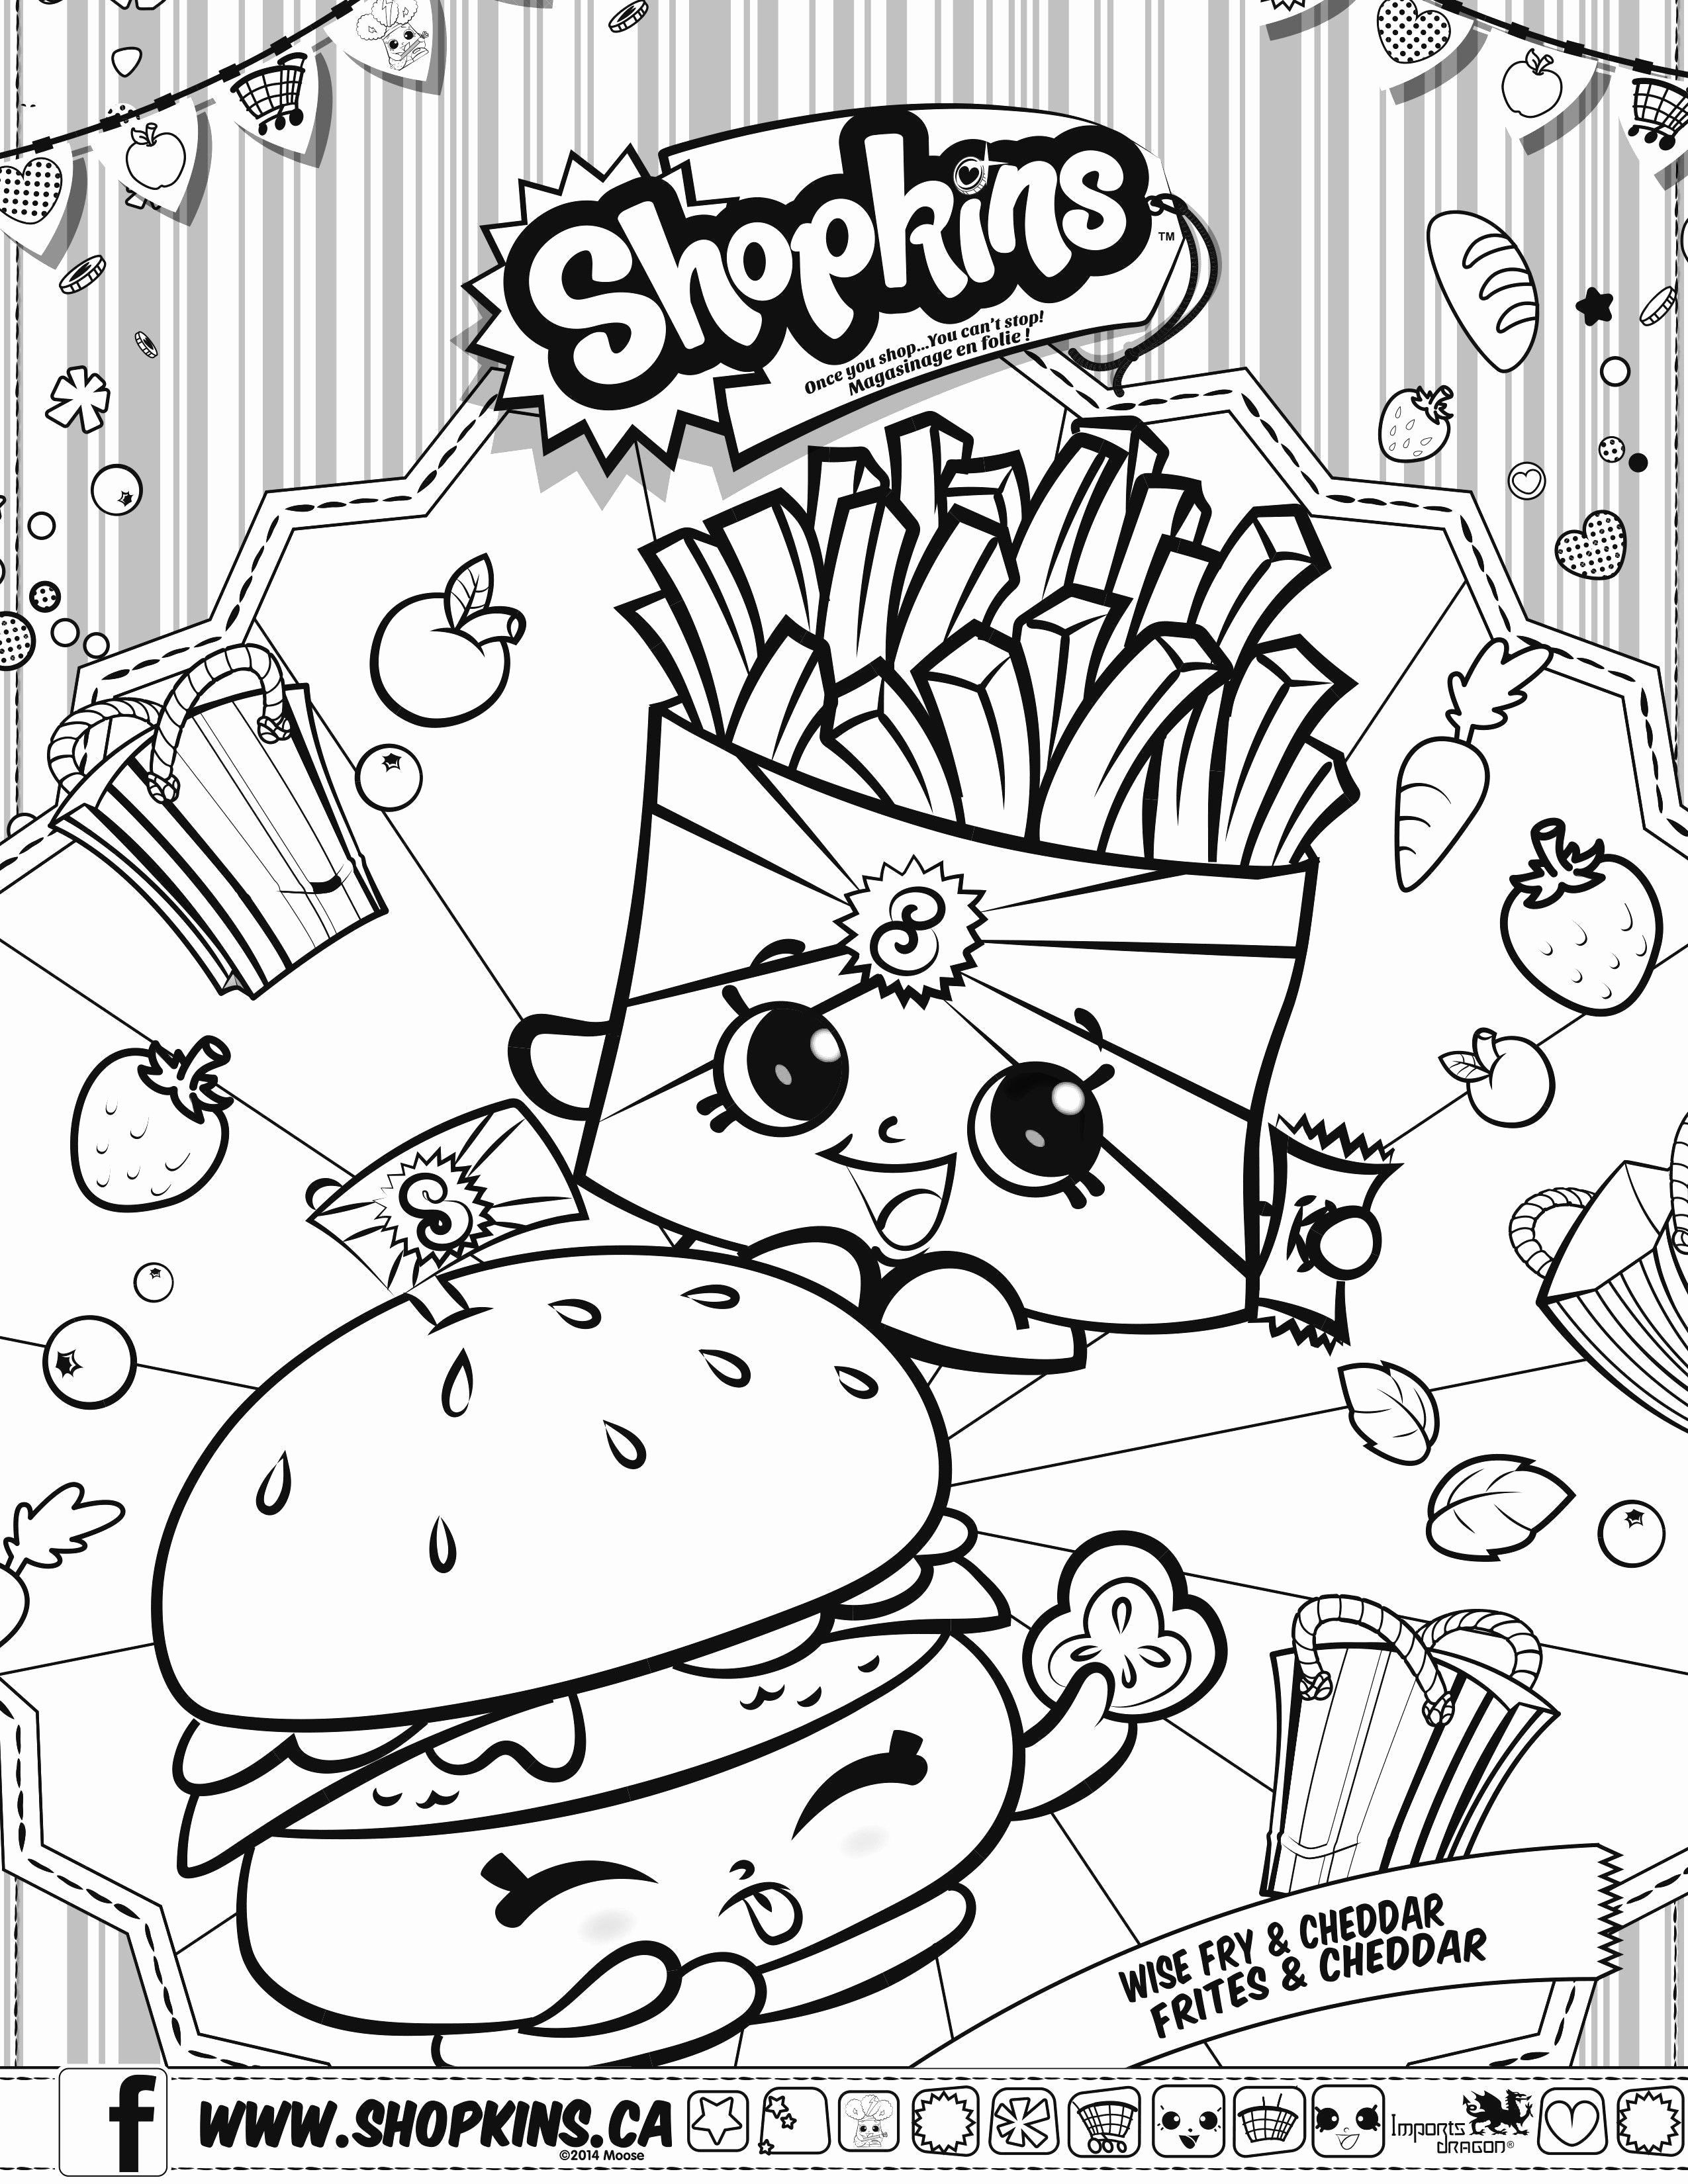 Happy 16th Birthday Coloring Pages Elegant Best 20th Century Fox Logo Coloring Pages Valentine Coloring Pages Shopkin Coloring Pages Shopkins Colouring Pages